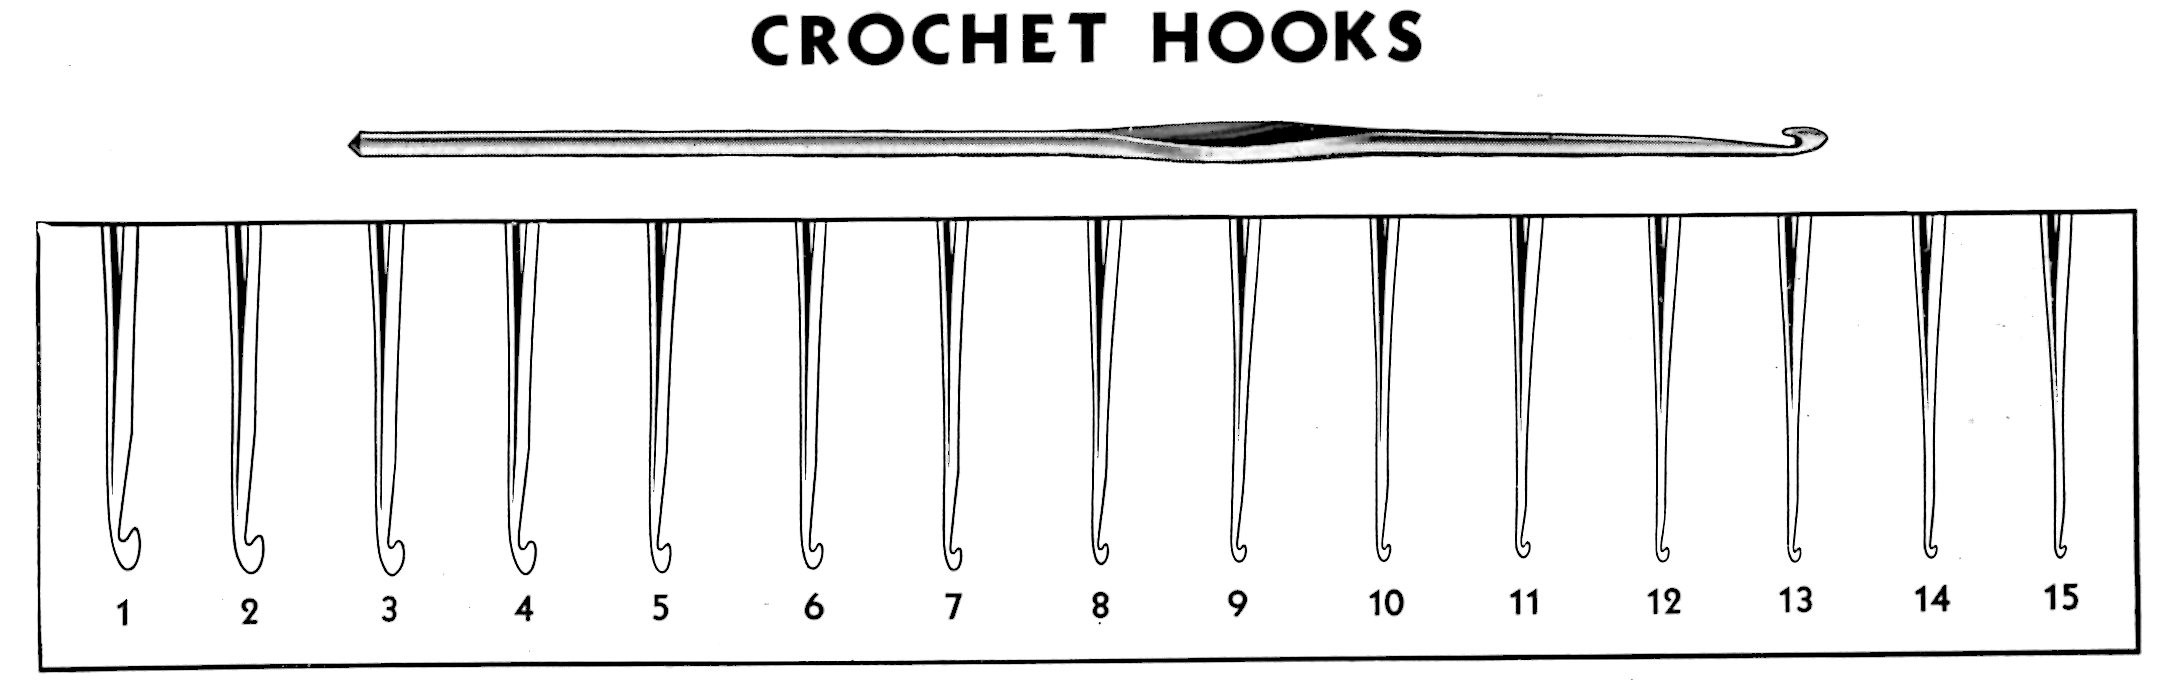 Crochet Hook Sizes for Beginners Beautiful Crochet Banding Archives Vintage Crafts and More Of Brilliant 45 Pics Crochet Hook Sizes for Beginners